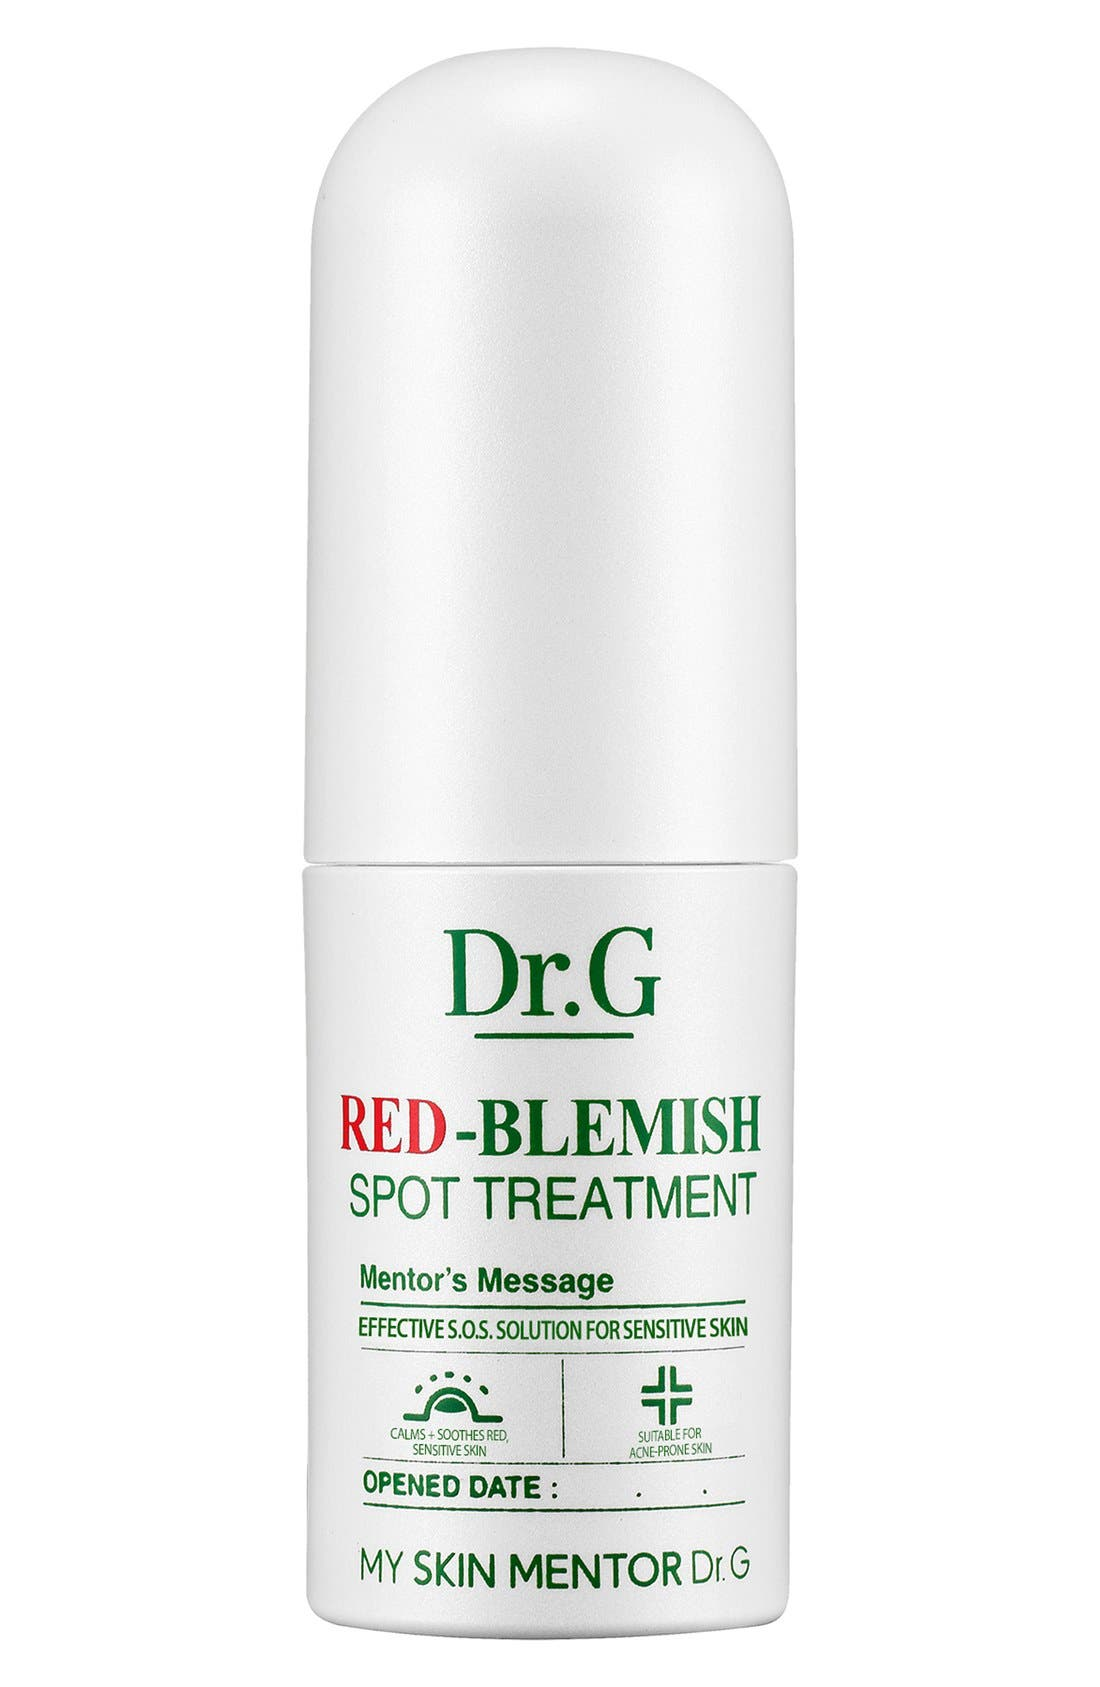 My Skin Mentor Dr. G Beauty Red-Blemish Spot Treatment